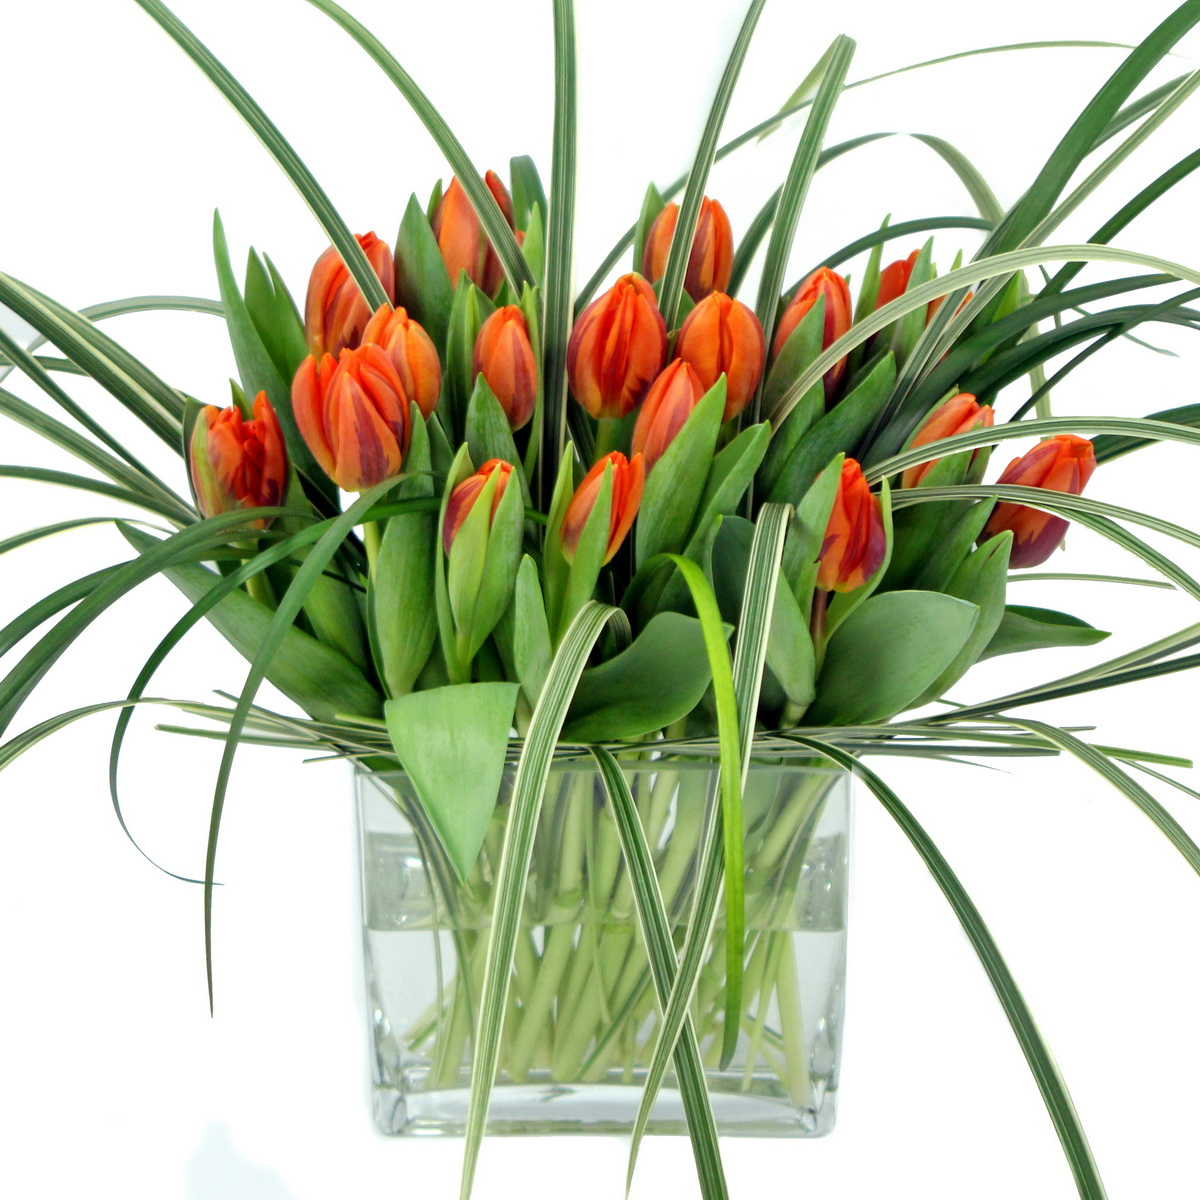 Surprising facts about spring flowers daffodils mightylinksfo